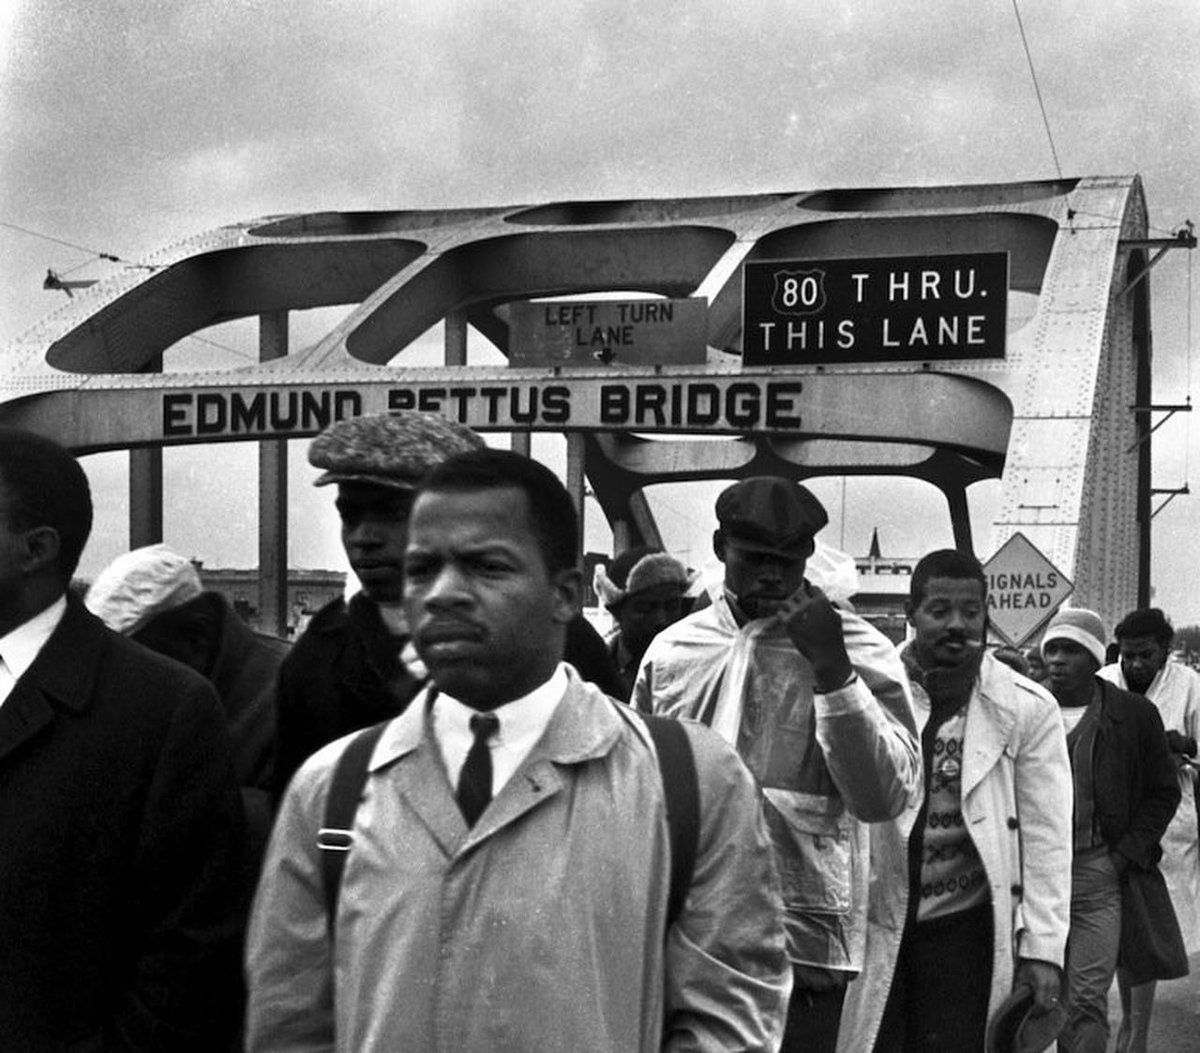 John Lewis died today. You see the name on the bridge he's crossing in Selma, AL? It's the #EdmundPettusBridge named for a pro-slavery Confederate who was a KKK Grand Dragon. It's still there named Edmund Pettus Bridge. WTH is wrong with Alabama? Change the damn name already.